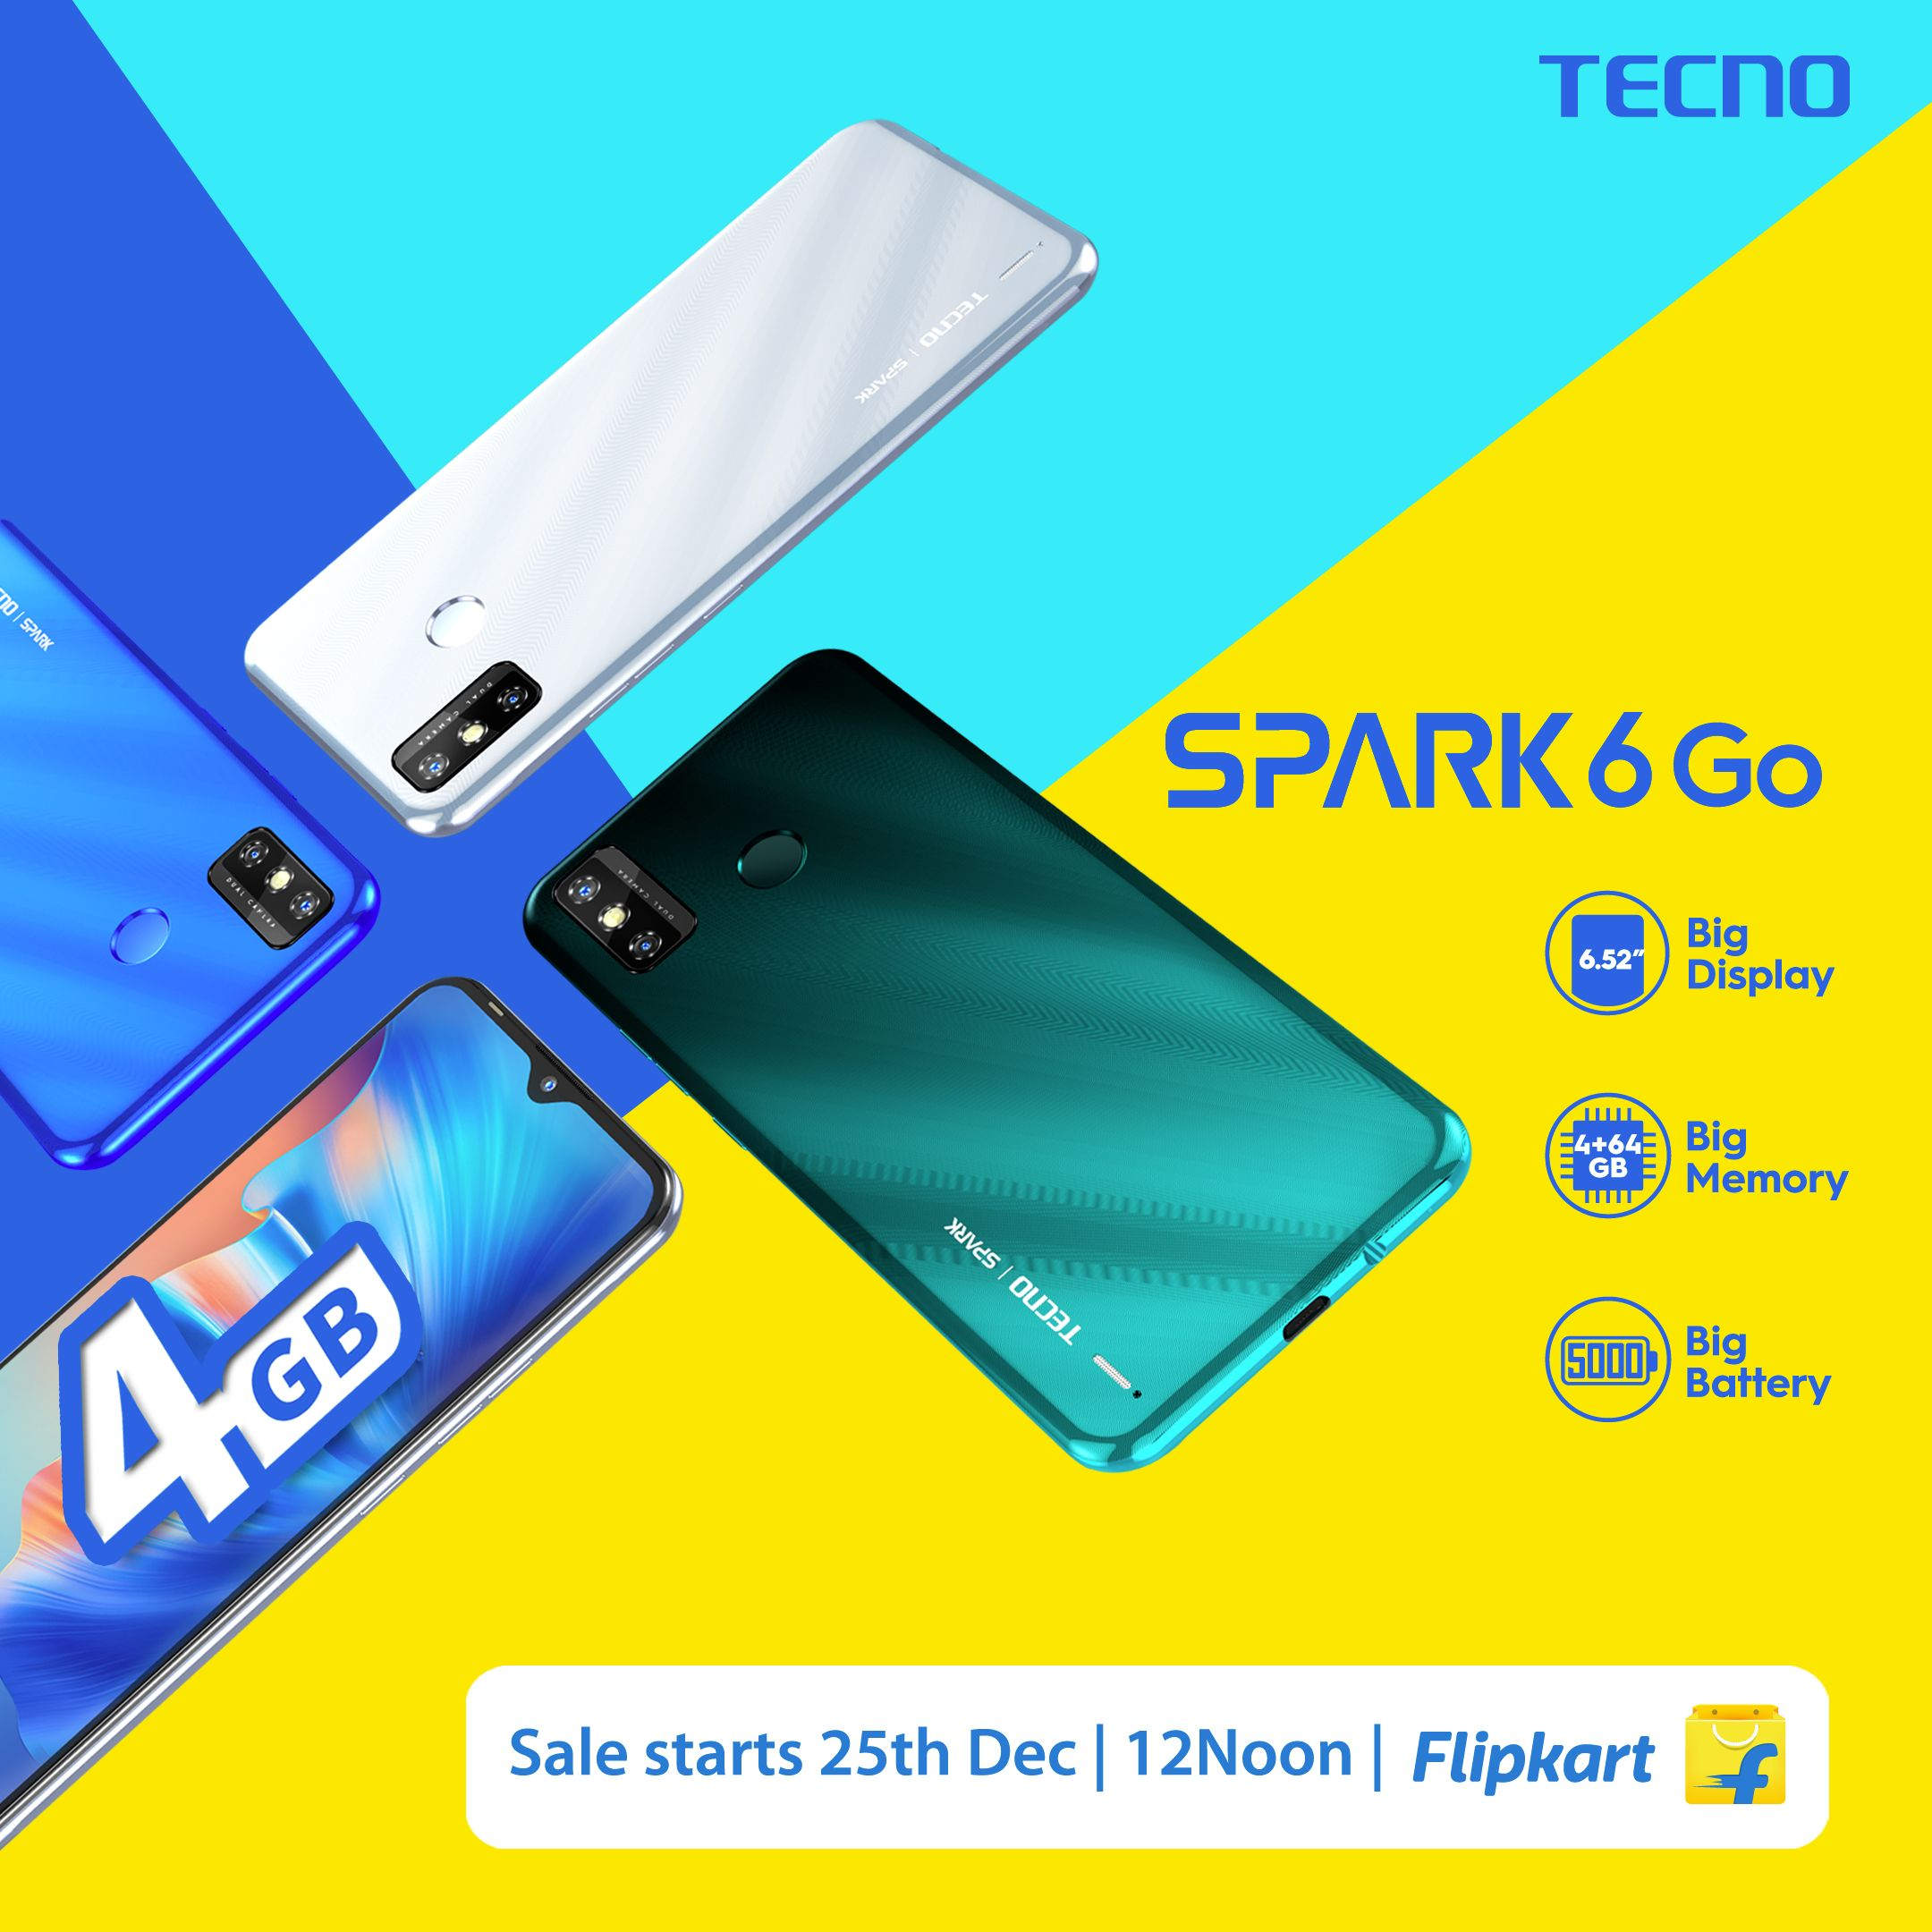 SPARK 6 Go: TECNO affirms leadership in sub-10k market with its most affordable 4GB device